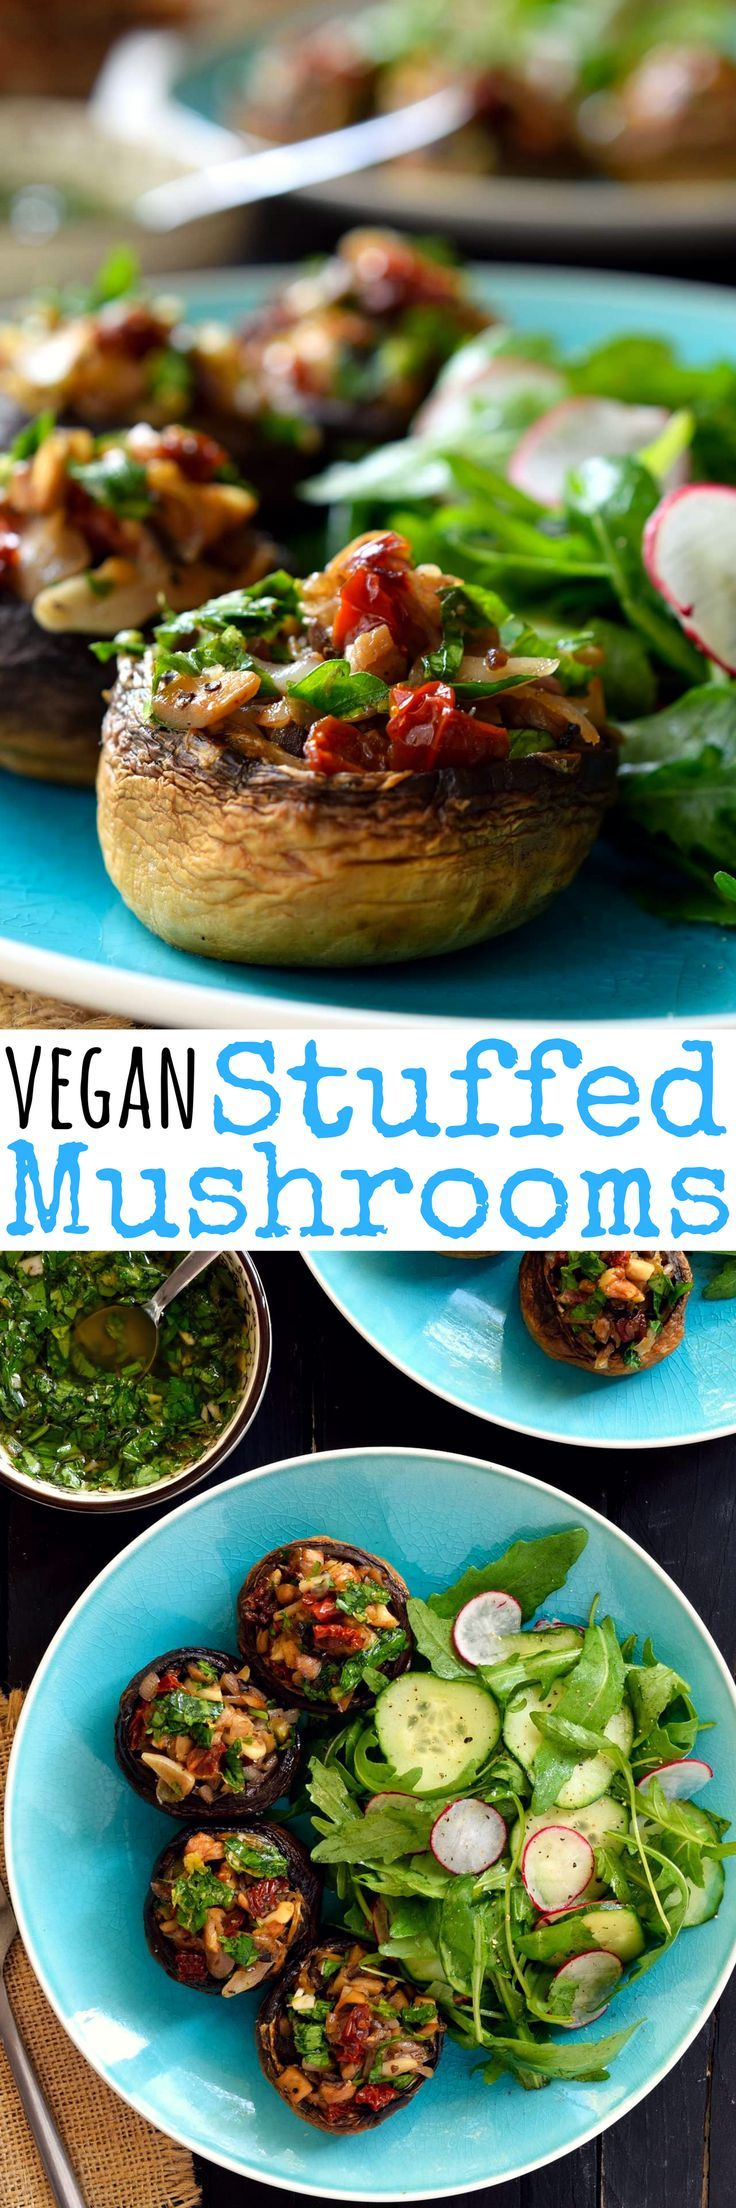 Vegan stuffed mushrooms are easy to make and packed with fresh herb-y, garlicky, citrus-y deliciousness. These little guys are